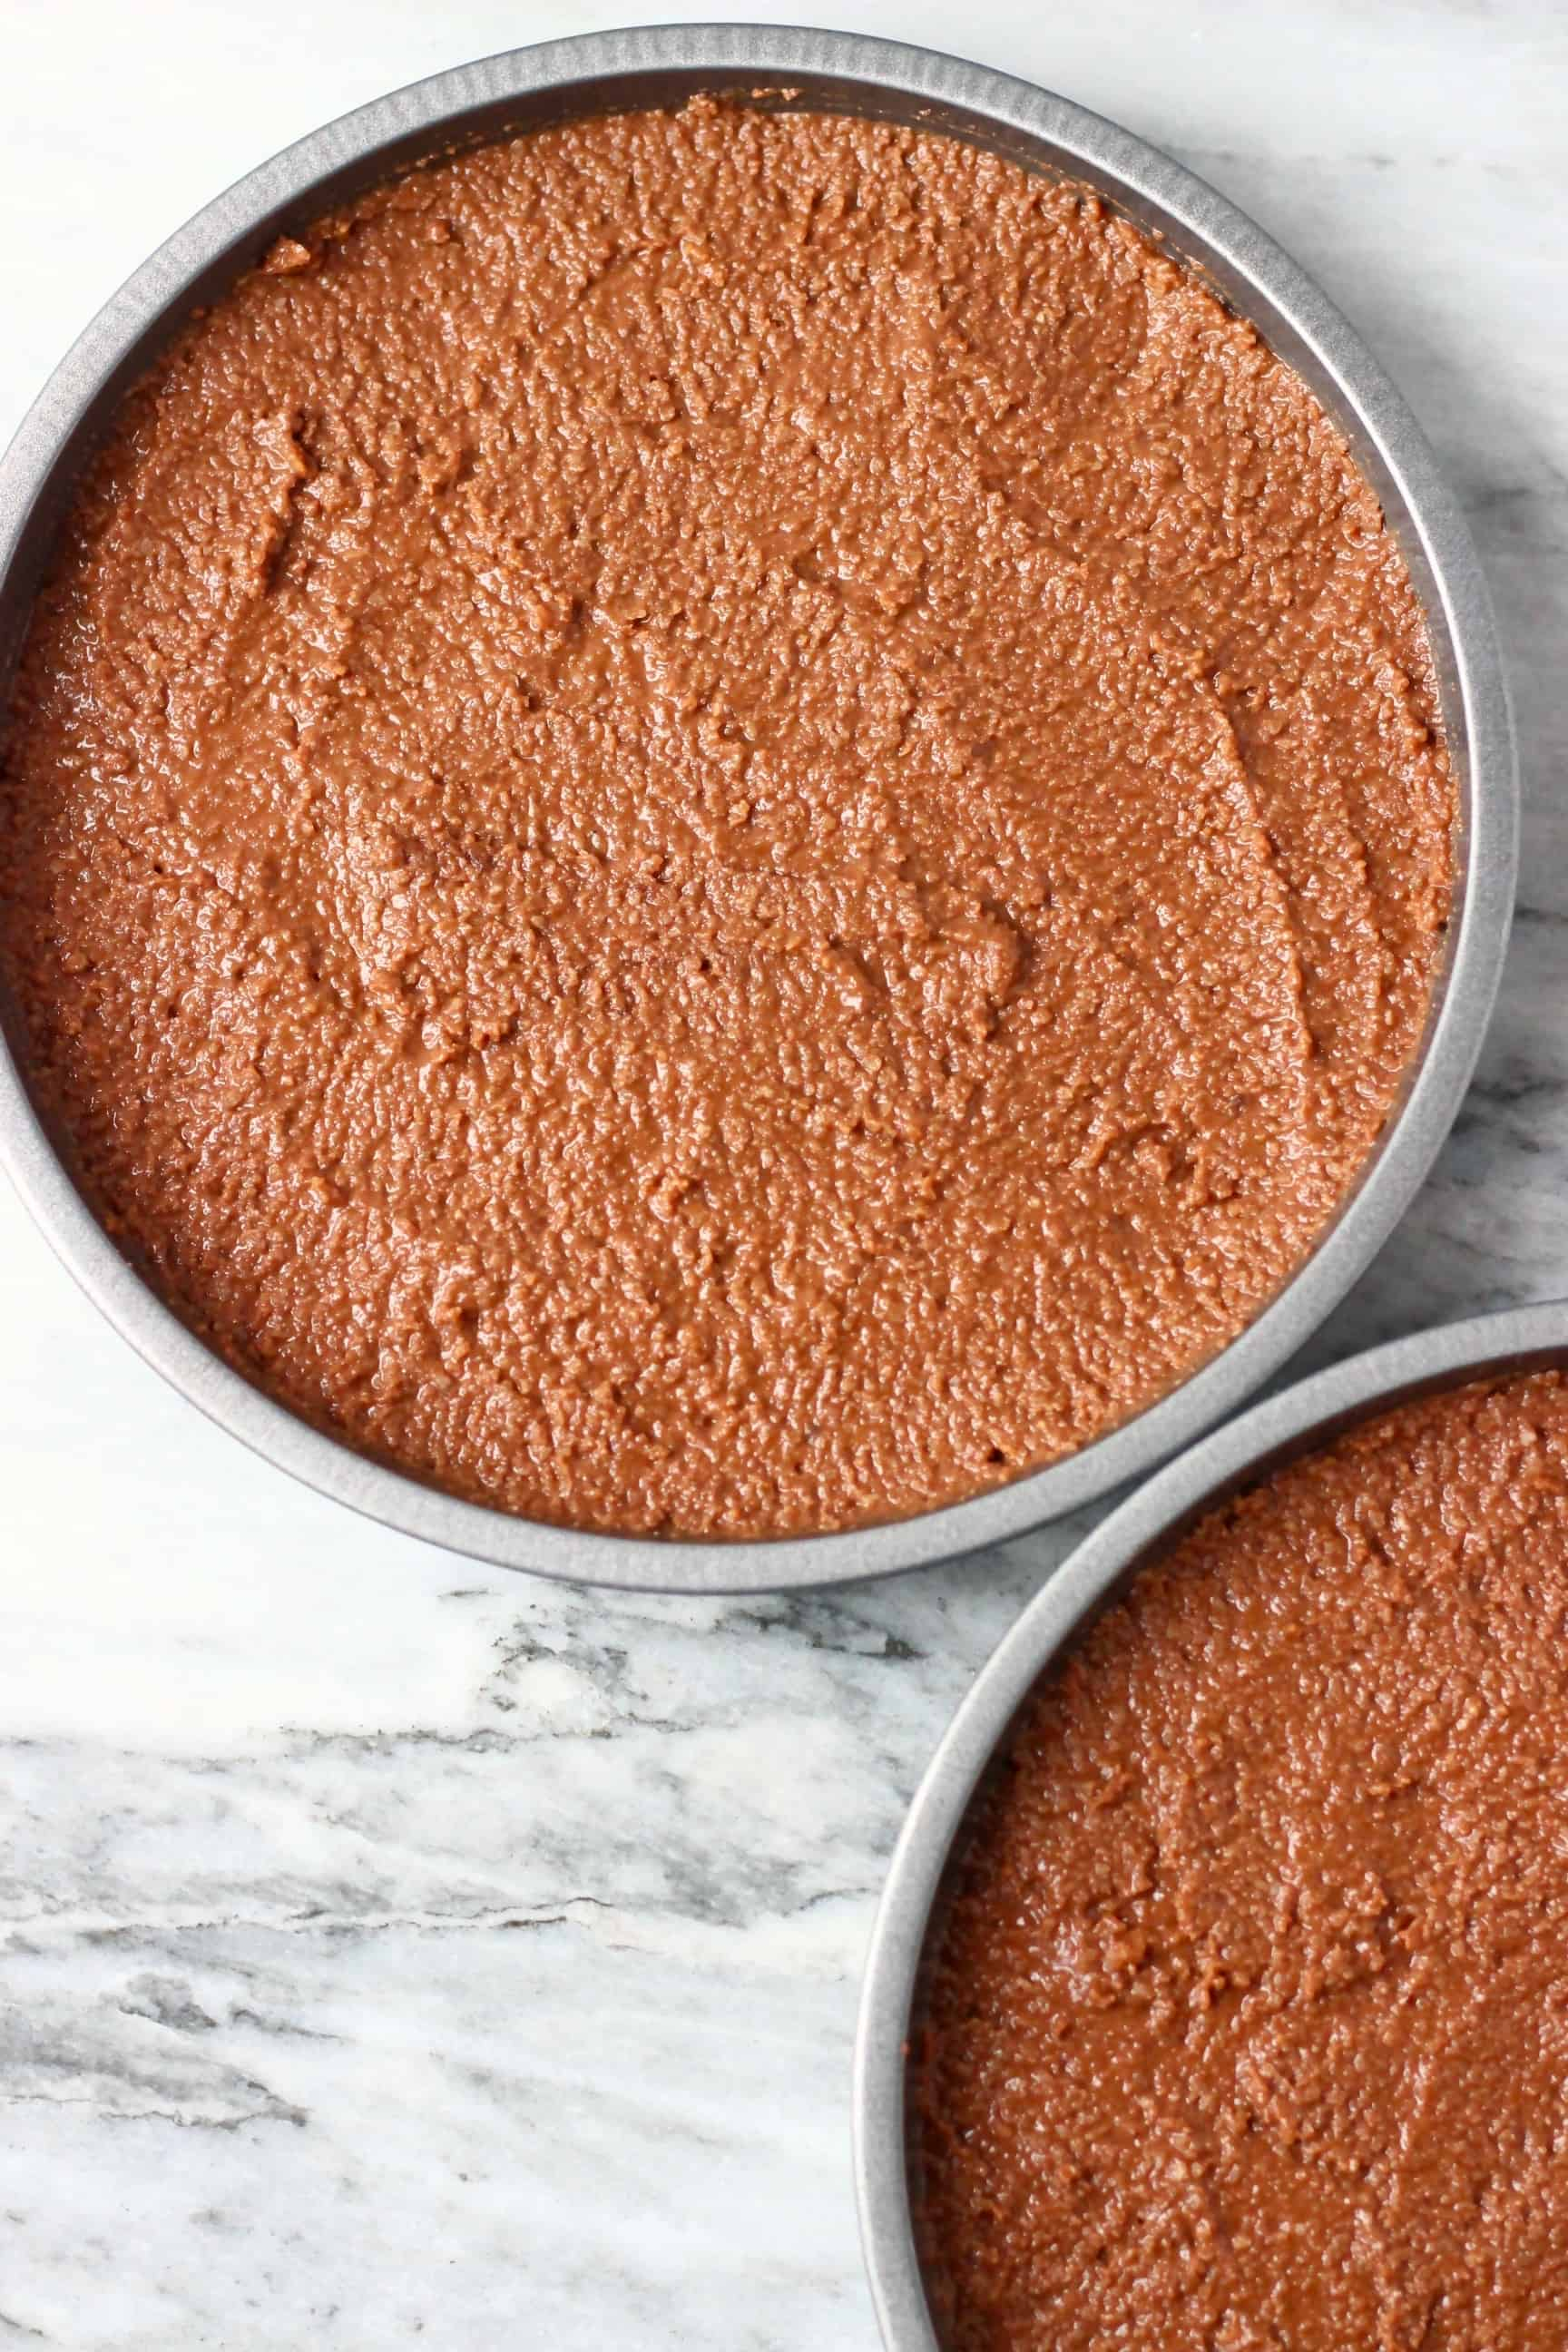 Two round baking tins filled with gluten-free vegan chocolate cake batter